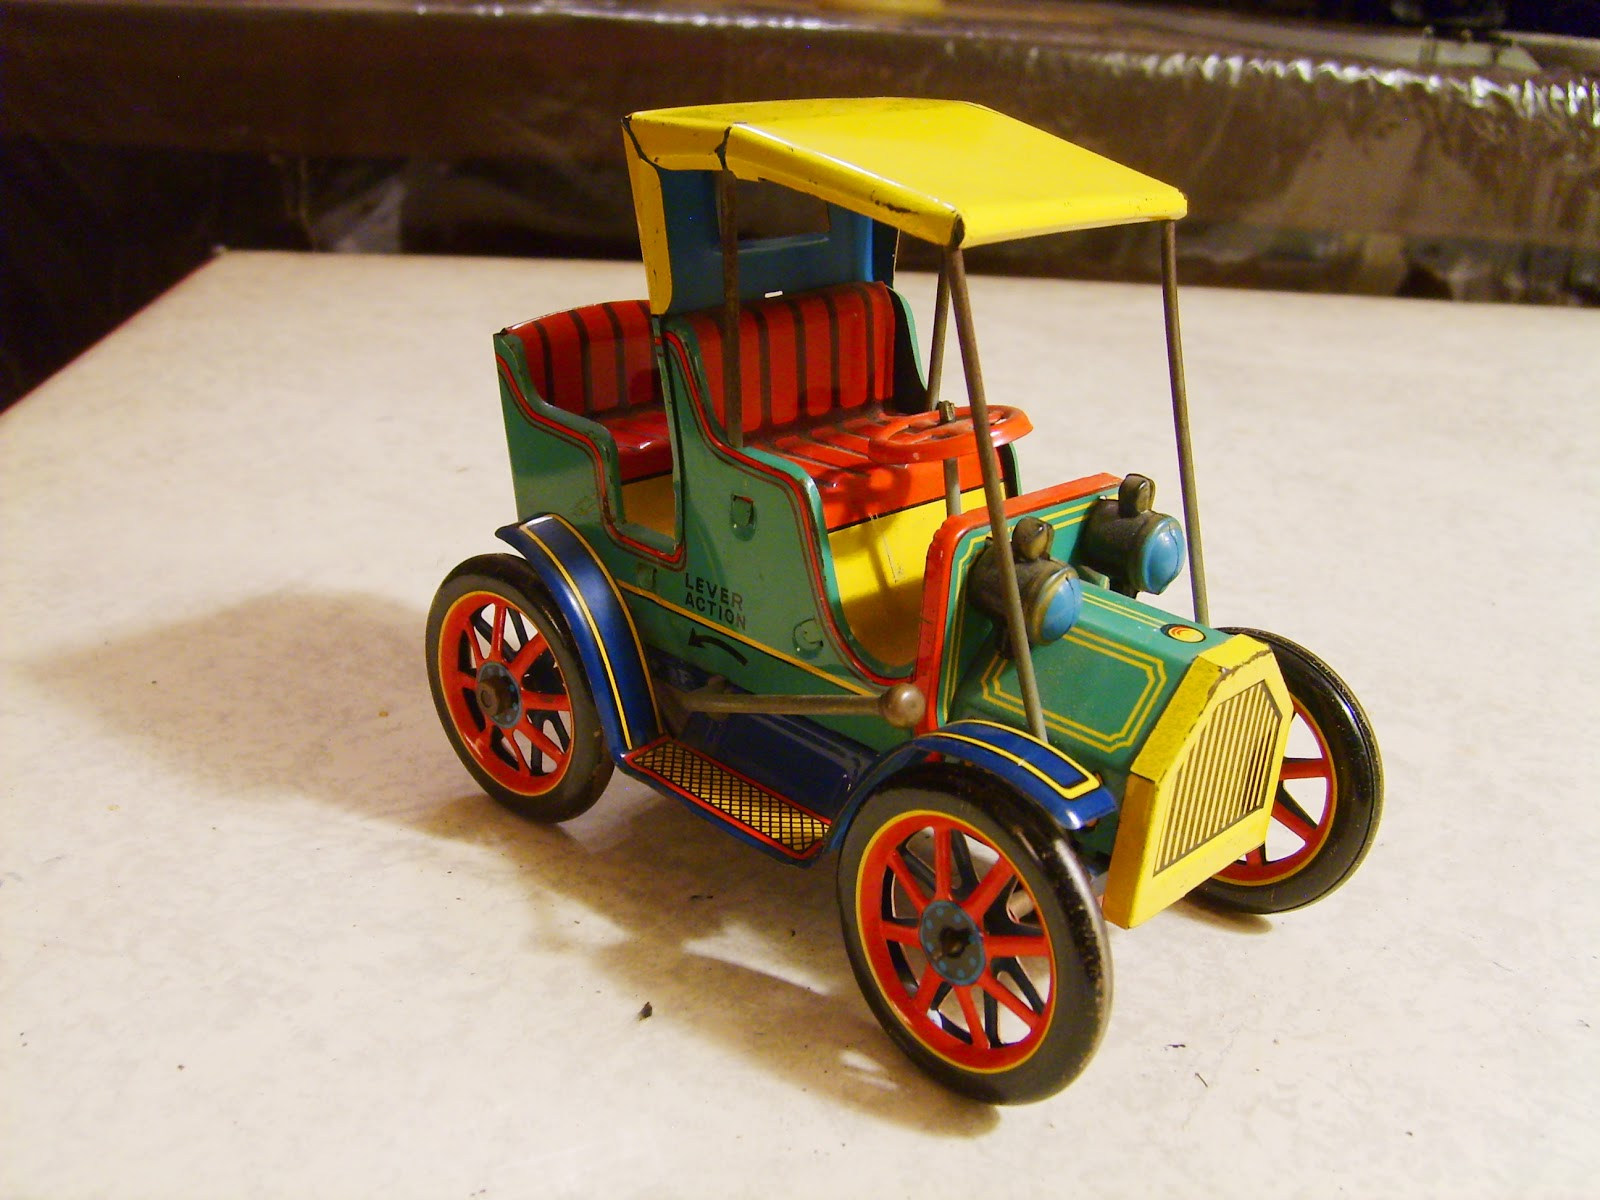 Finding Beauty in Ephemera: Japanese Tin Toy Vehicles, Part 3